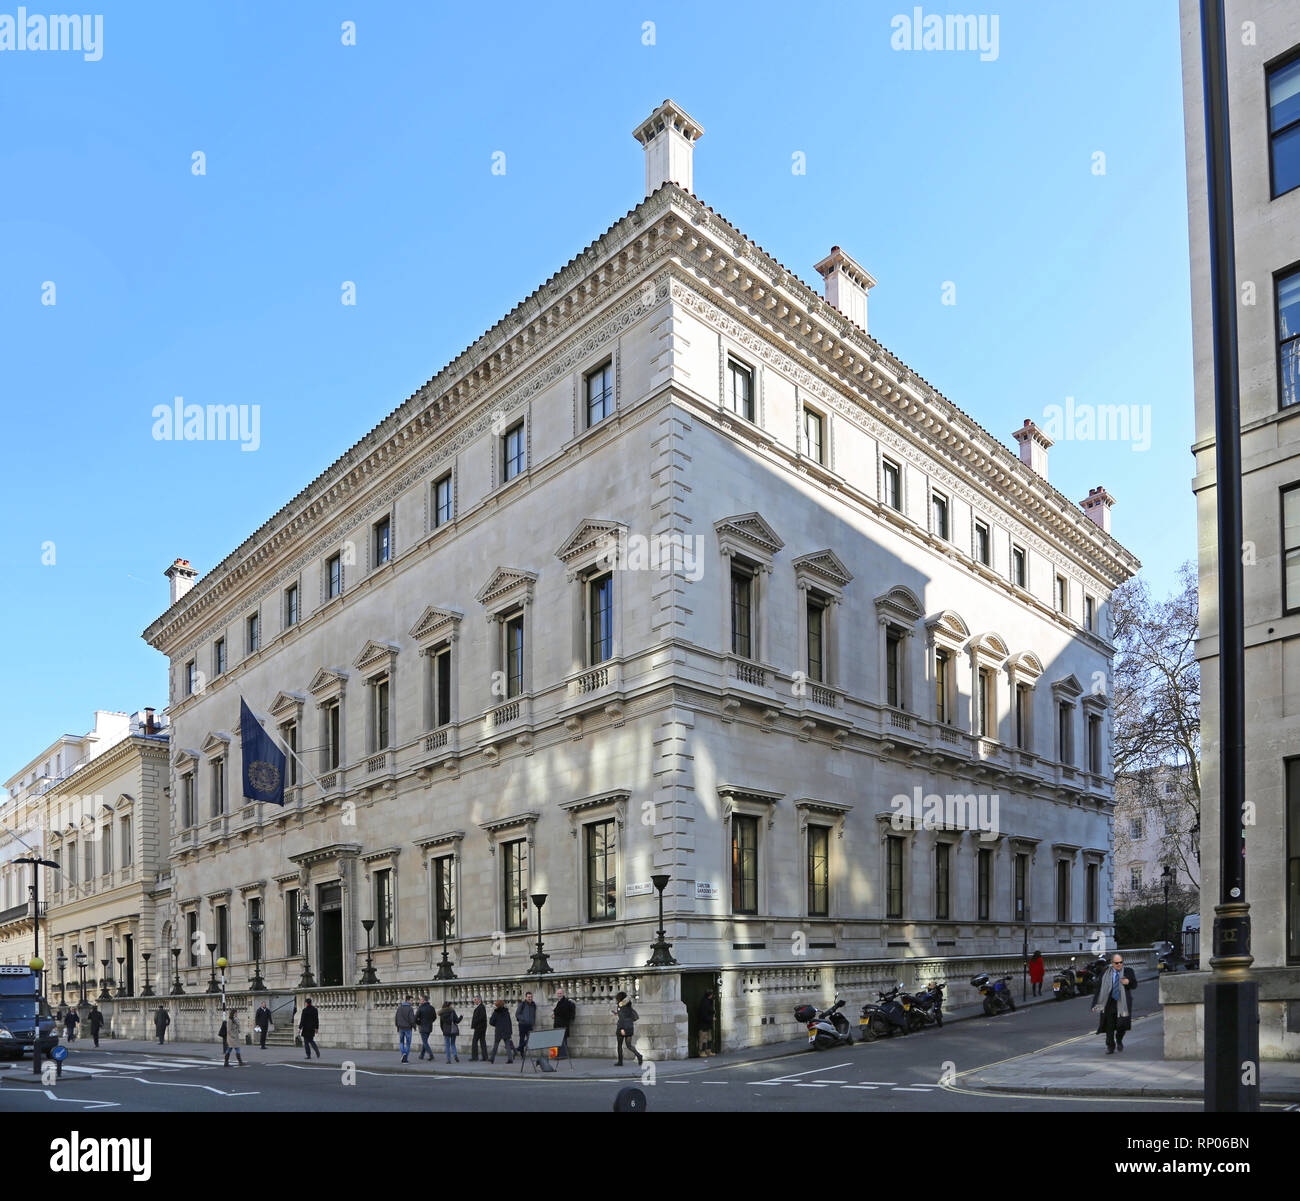 The Reform Club, an exclusive private menbers club on Pall Mall in London, UK. Building designed by Sir Charles Barry. - Stock Image